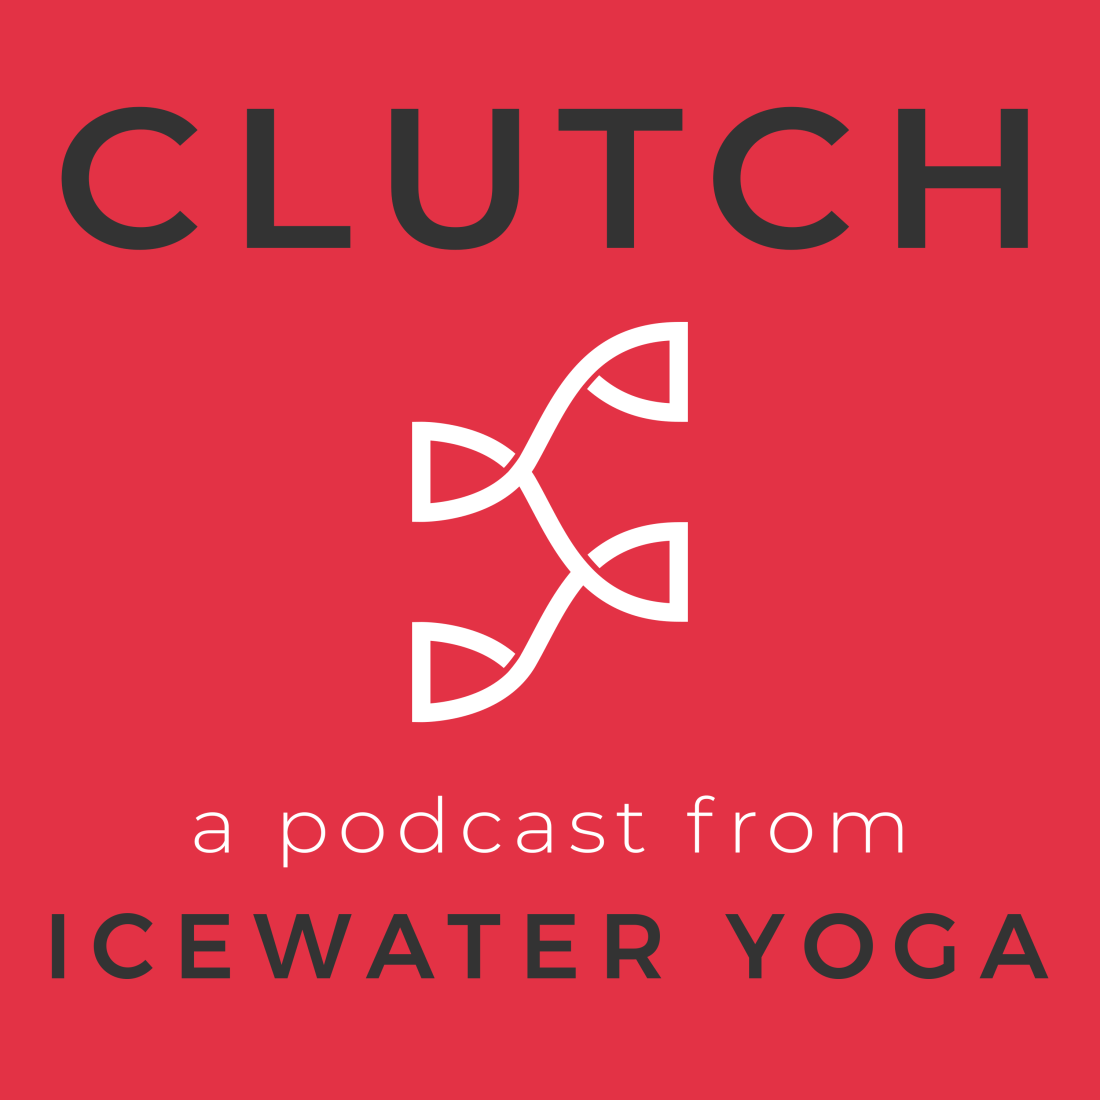 The Clutch Podcast